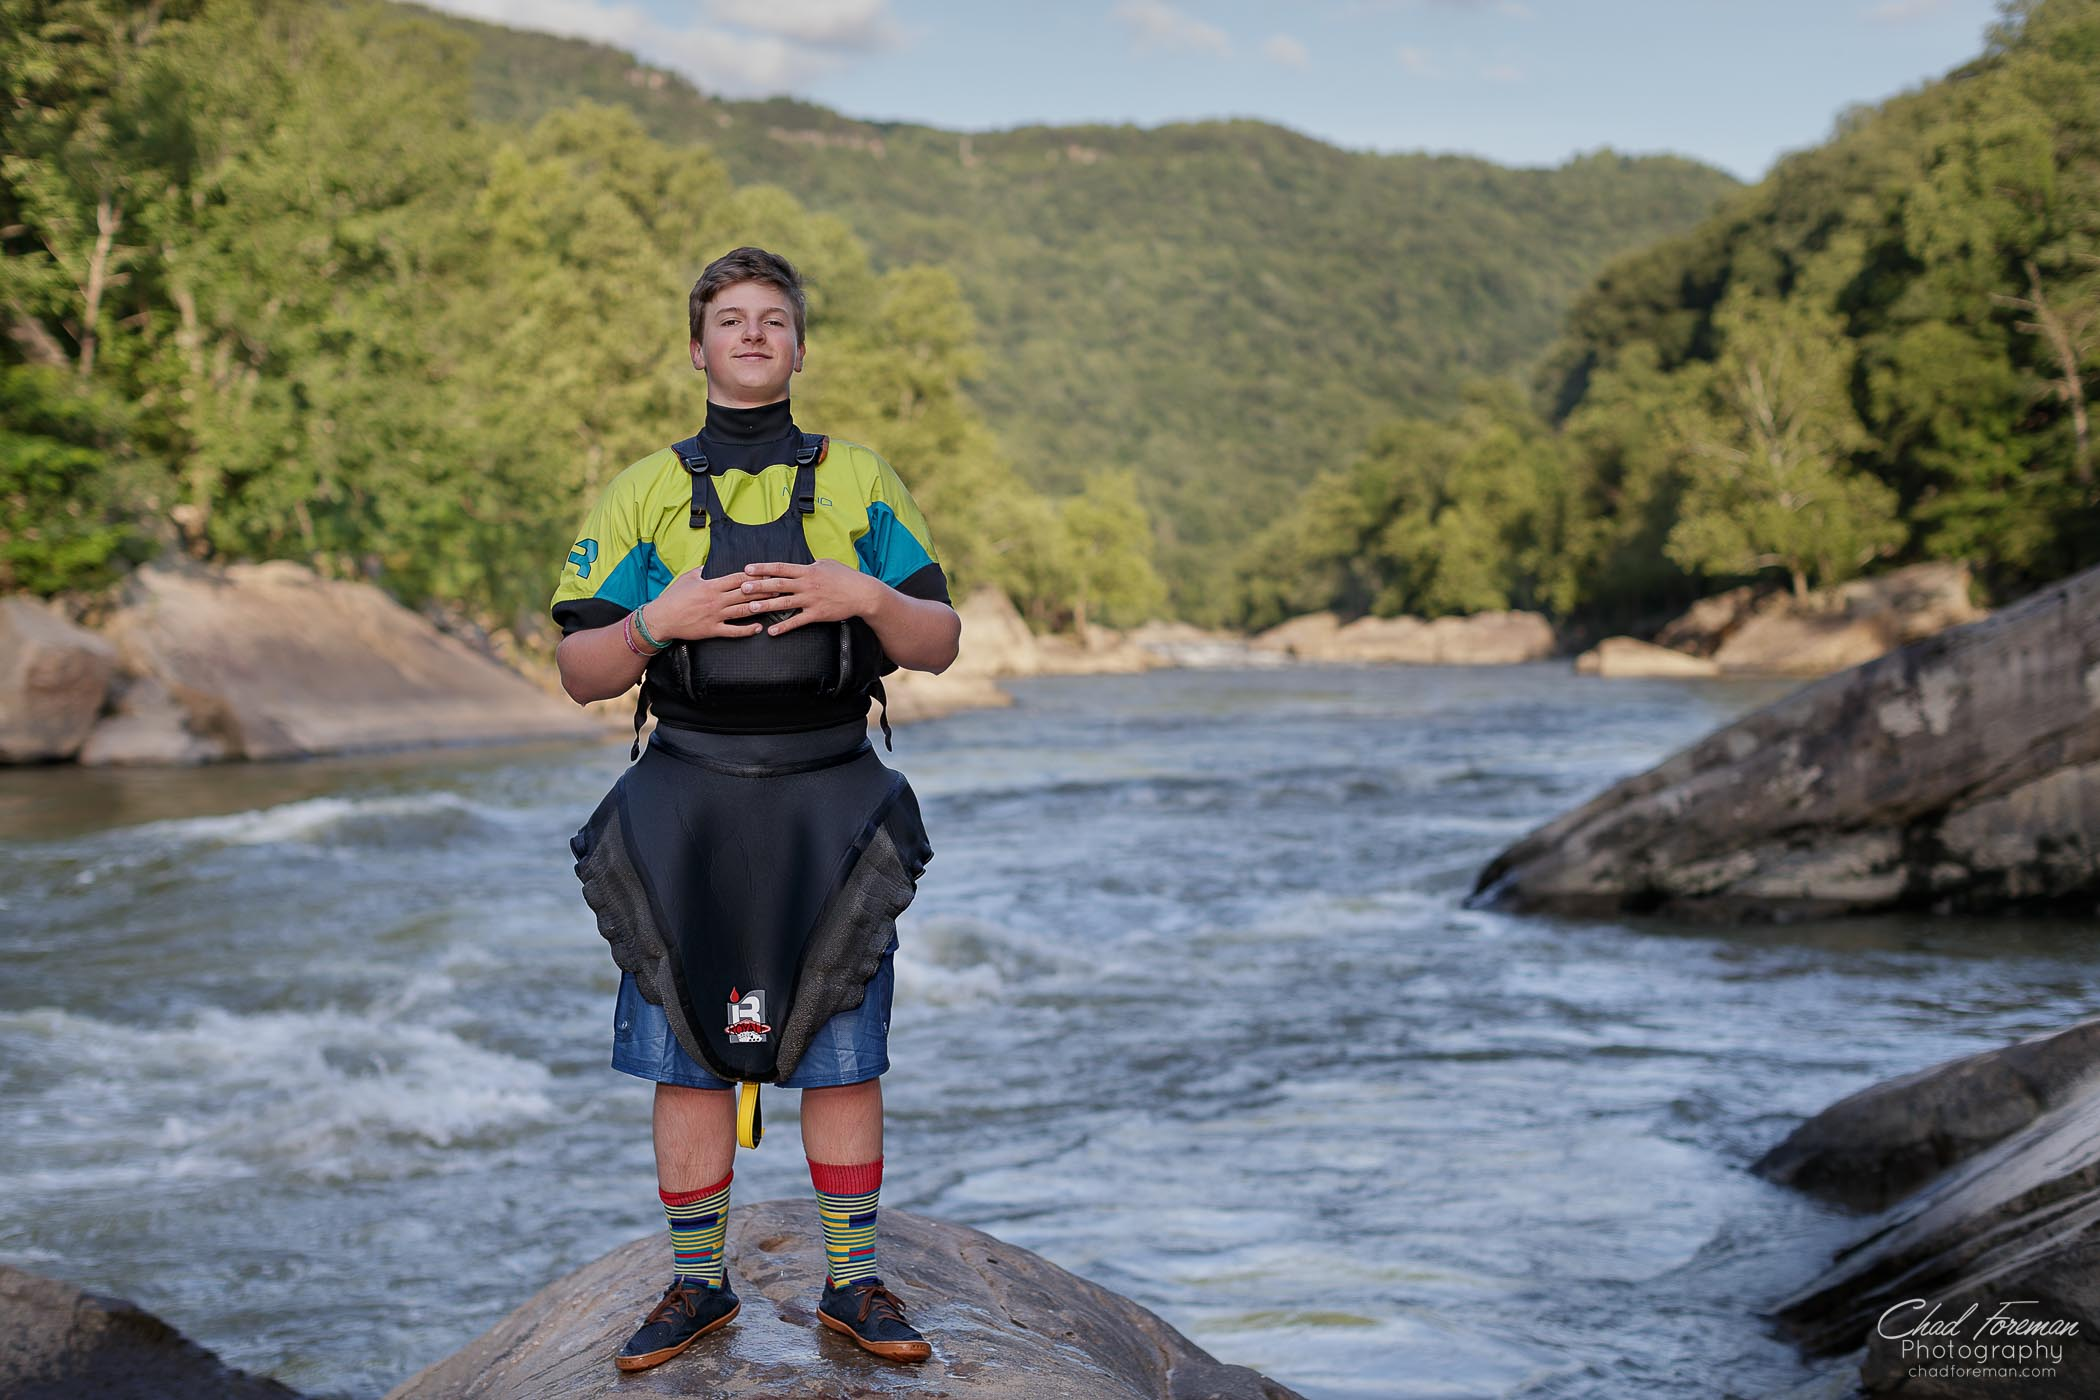 river athlete profile portrait